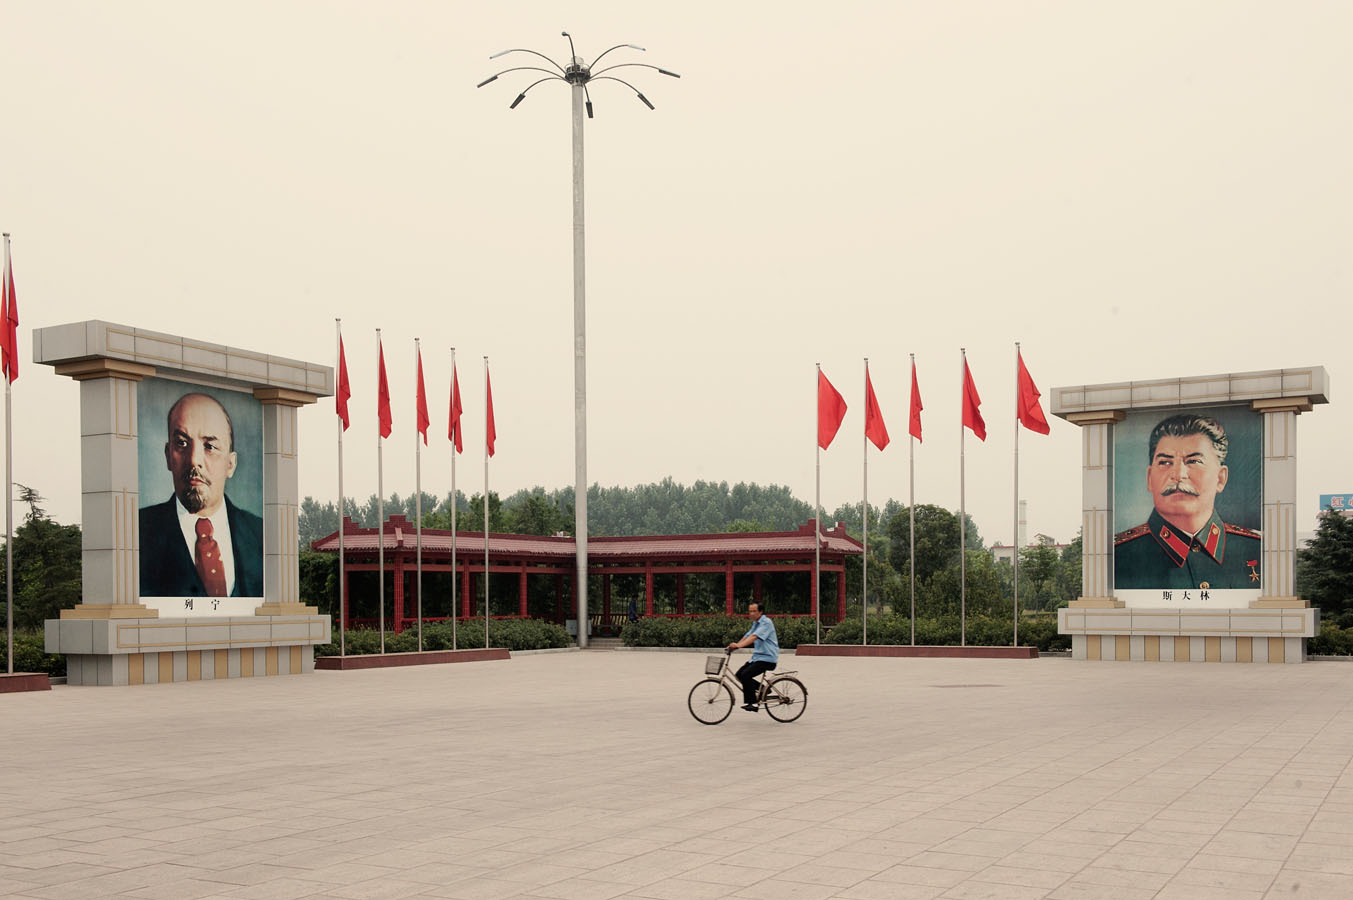 'East is Red' square, potrait of communist leader. in nanjiecun